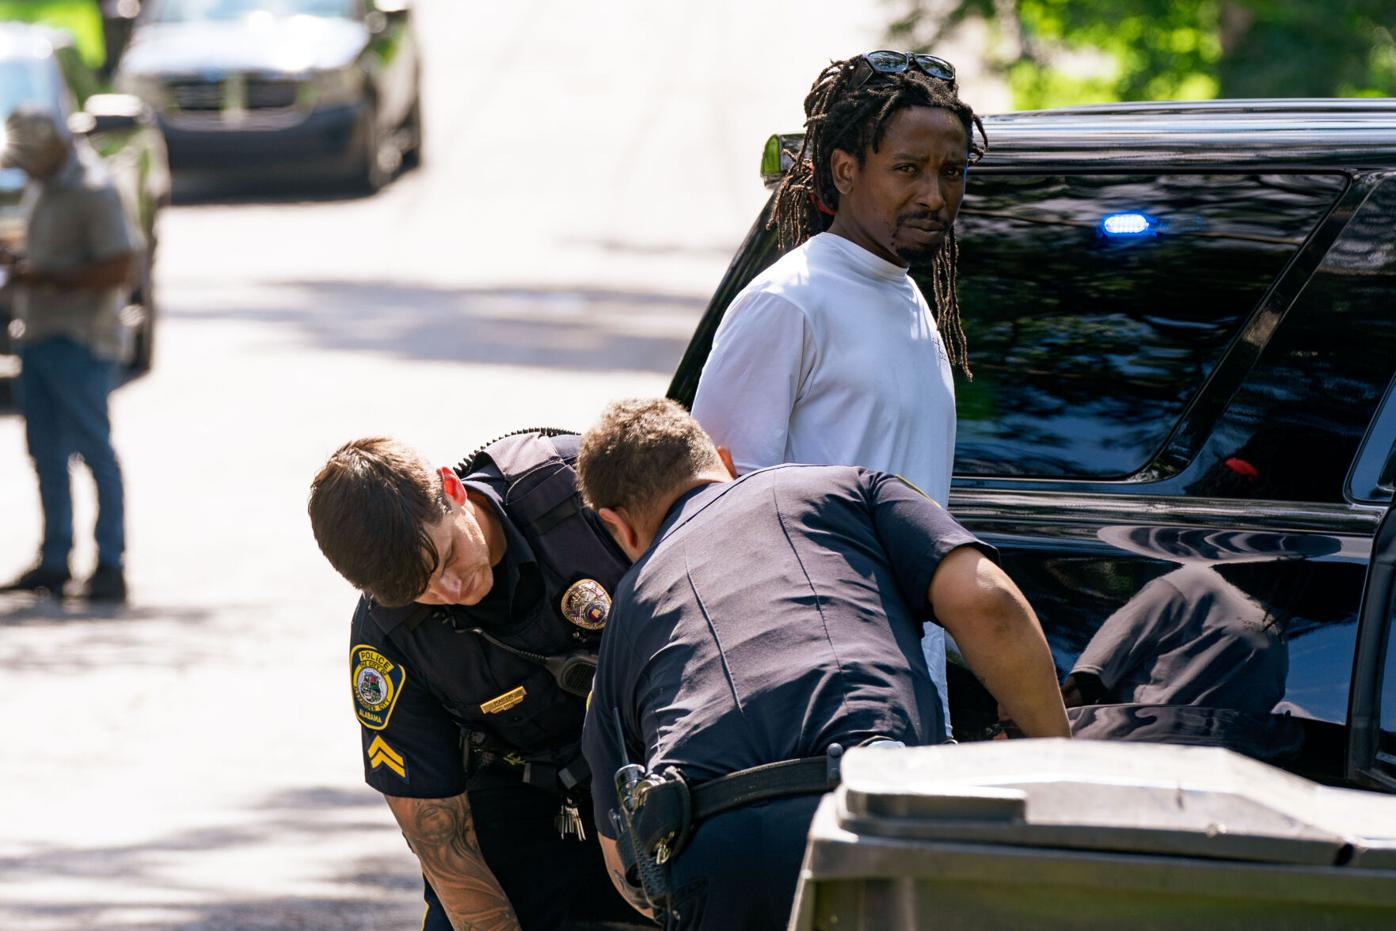 ACPD arrests suspect following foot chase